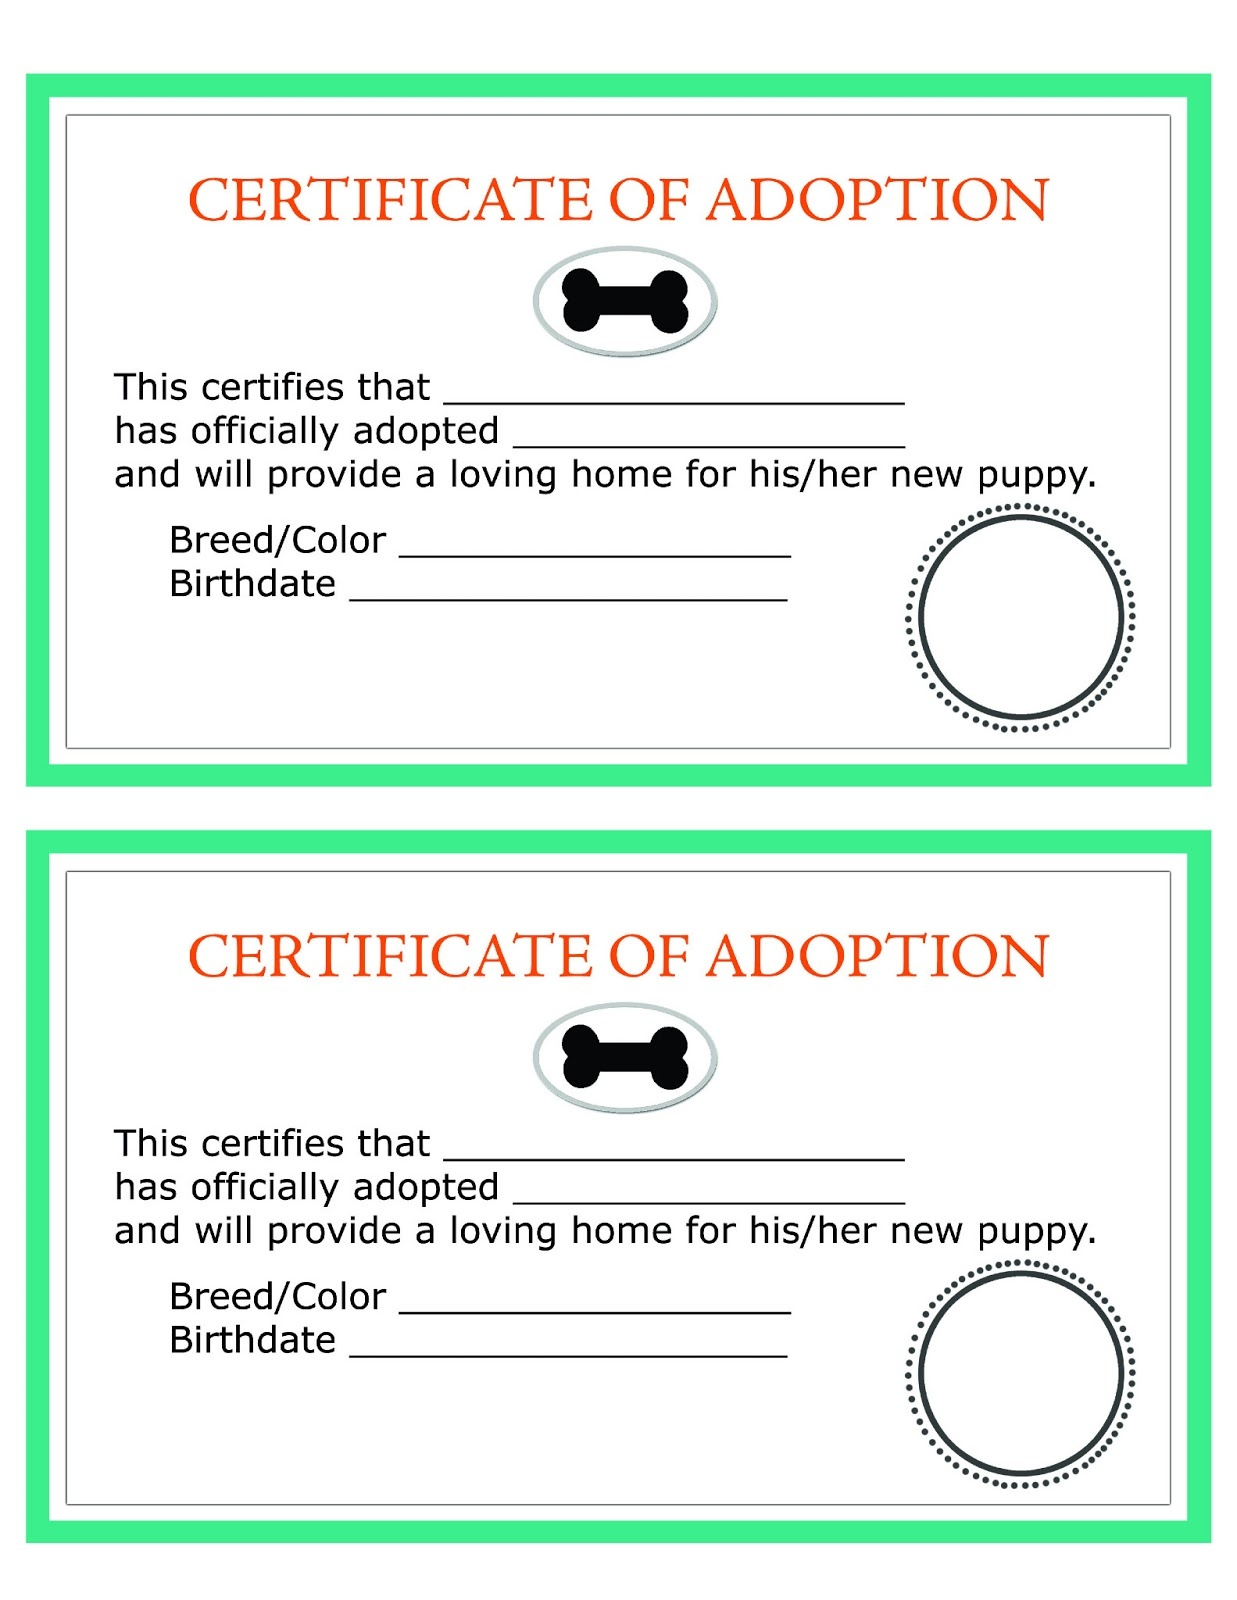 Adoption Certificate Templates. Adoption Certificate Template - Free Printable Adoption Certificate